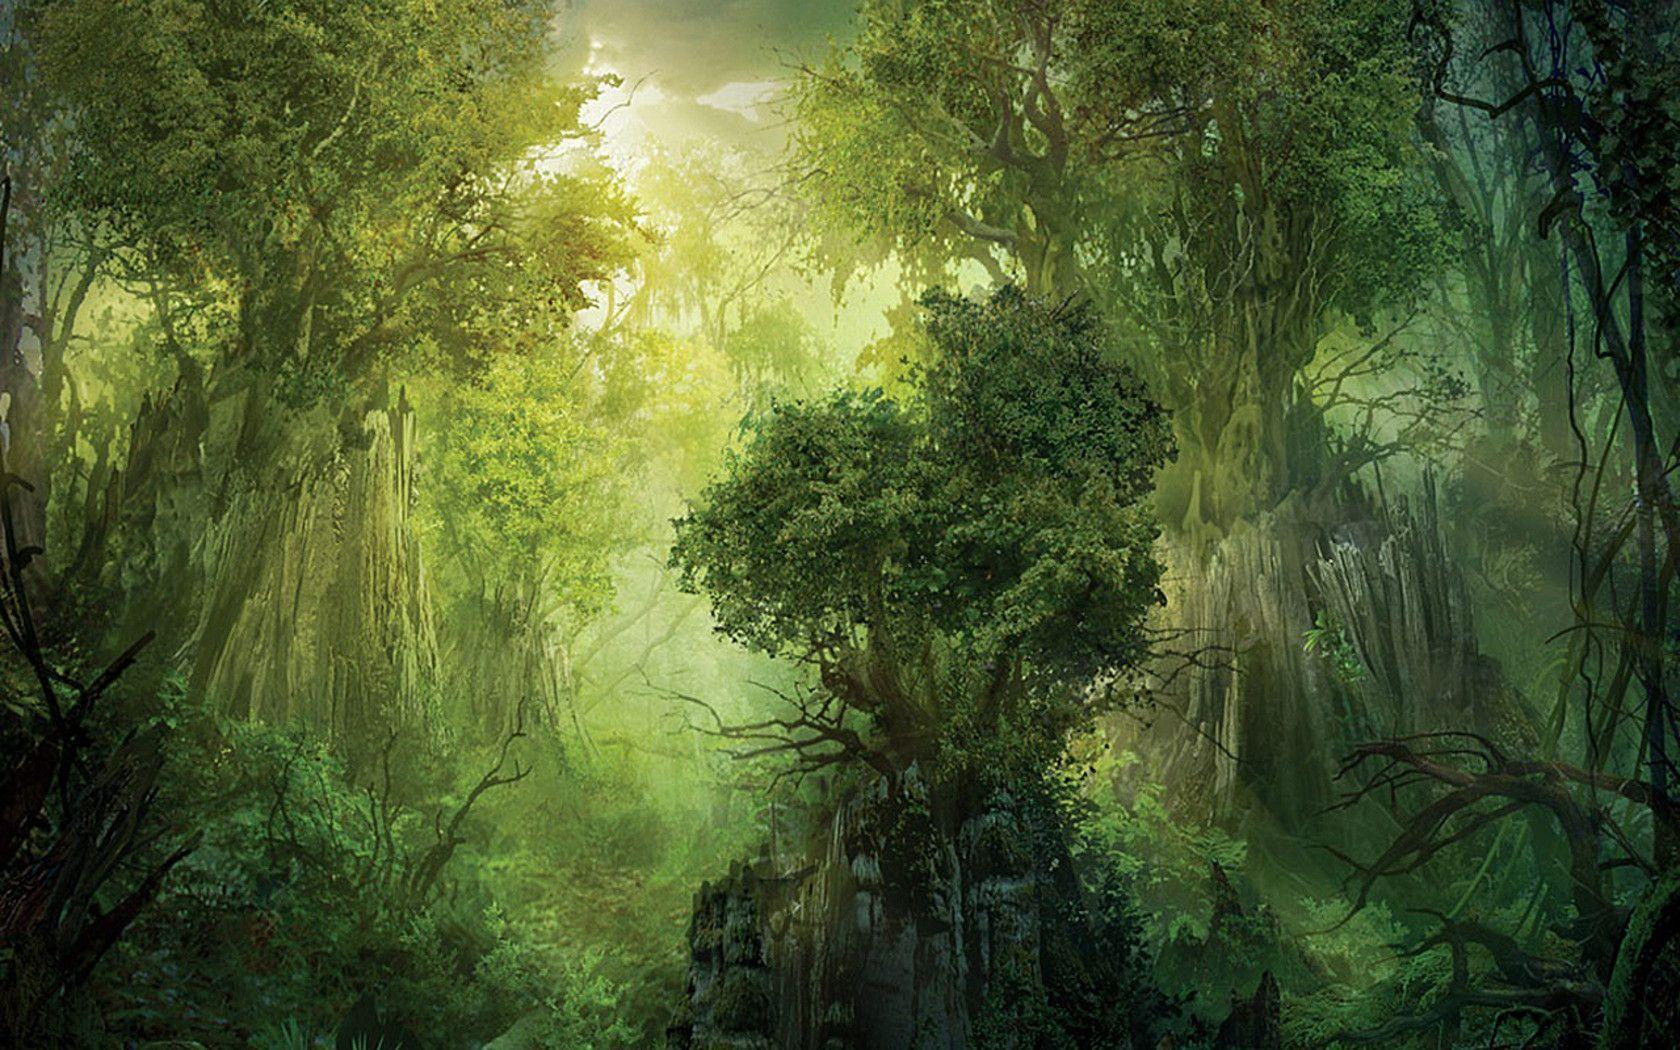 hunters dream descriptive The once vibrant hues of the plants were no more than a vivid dream  by my  genes i am a predator, i have the front facing eyes and brain enough to hunt,.